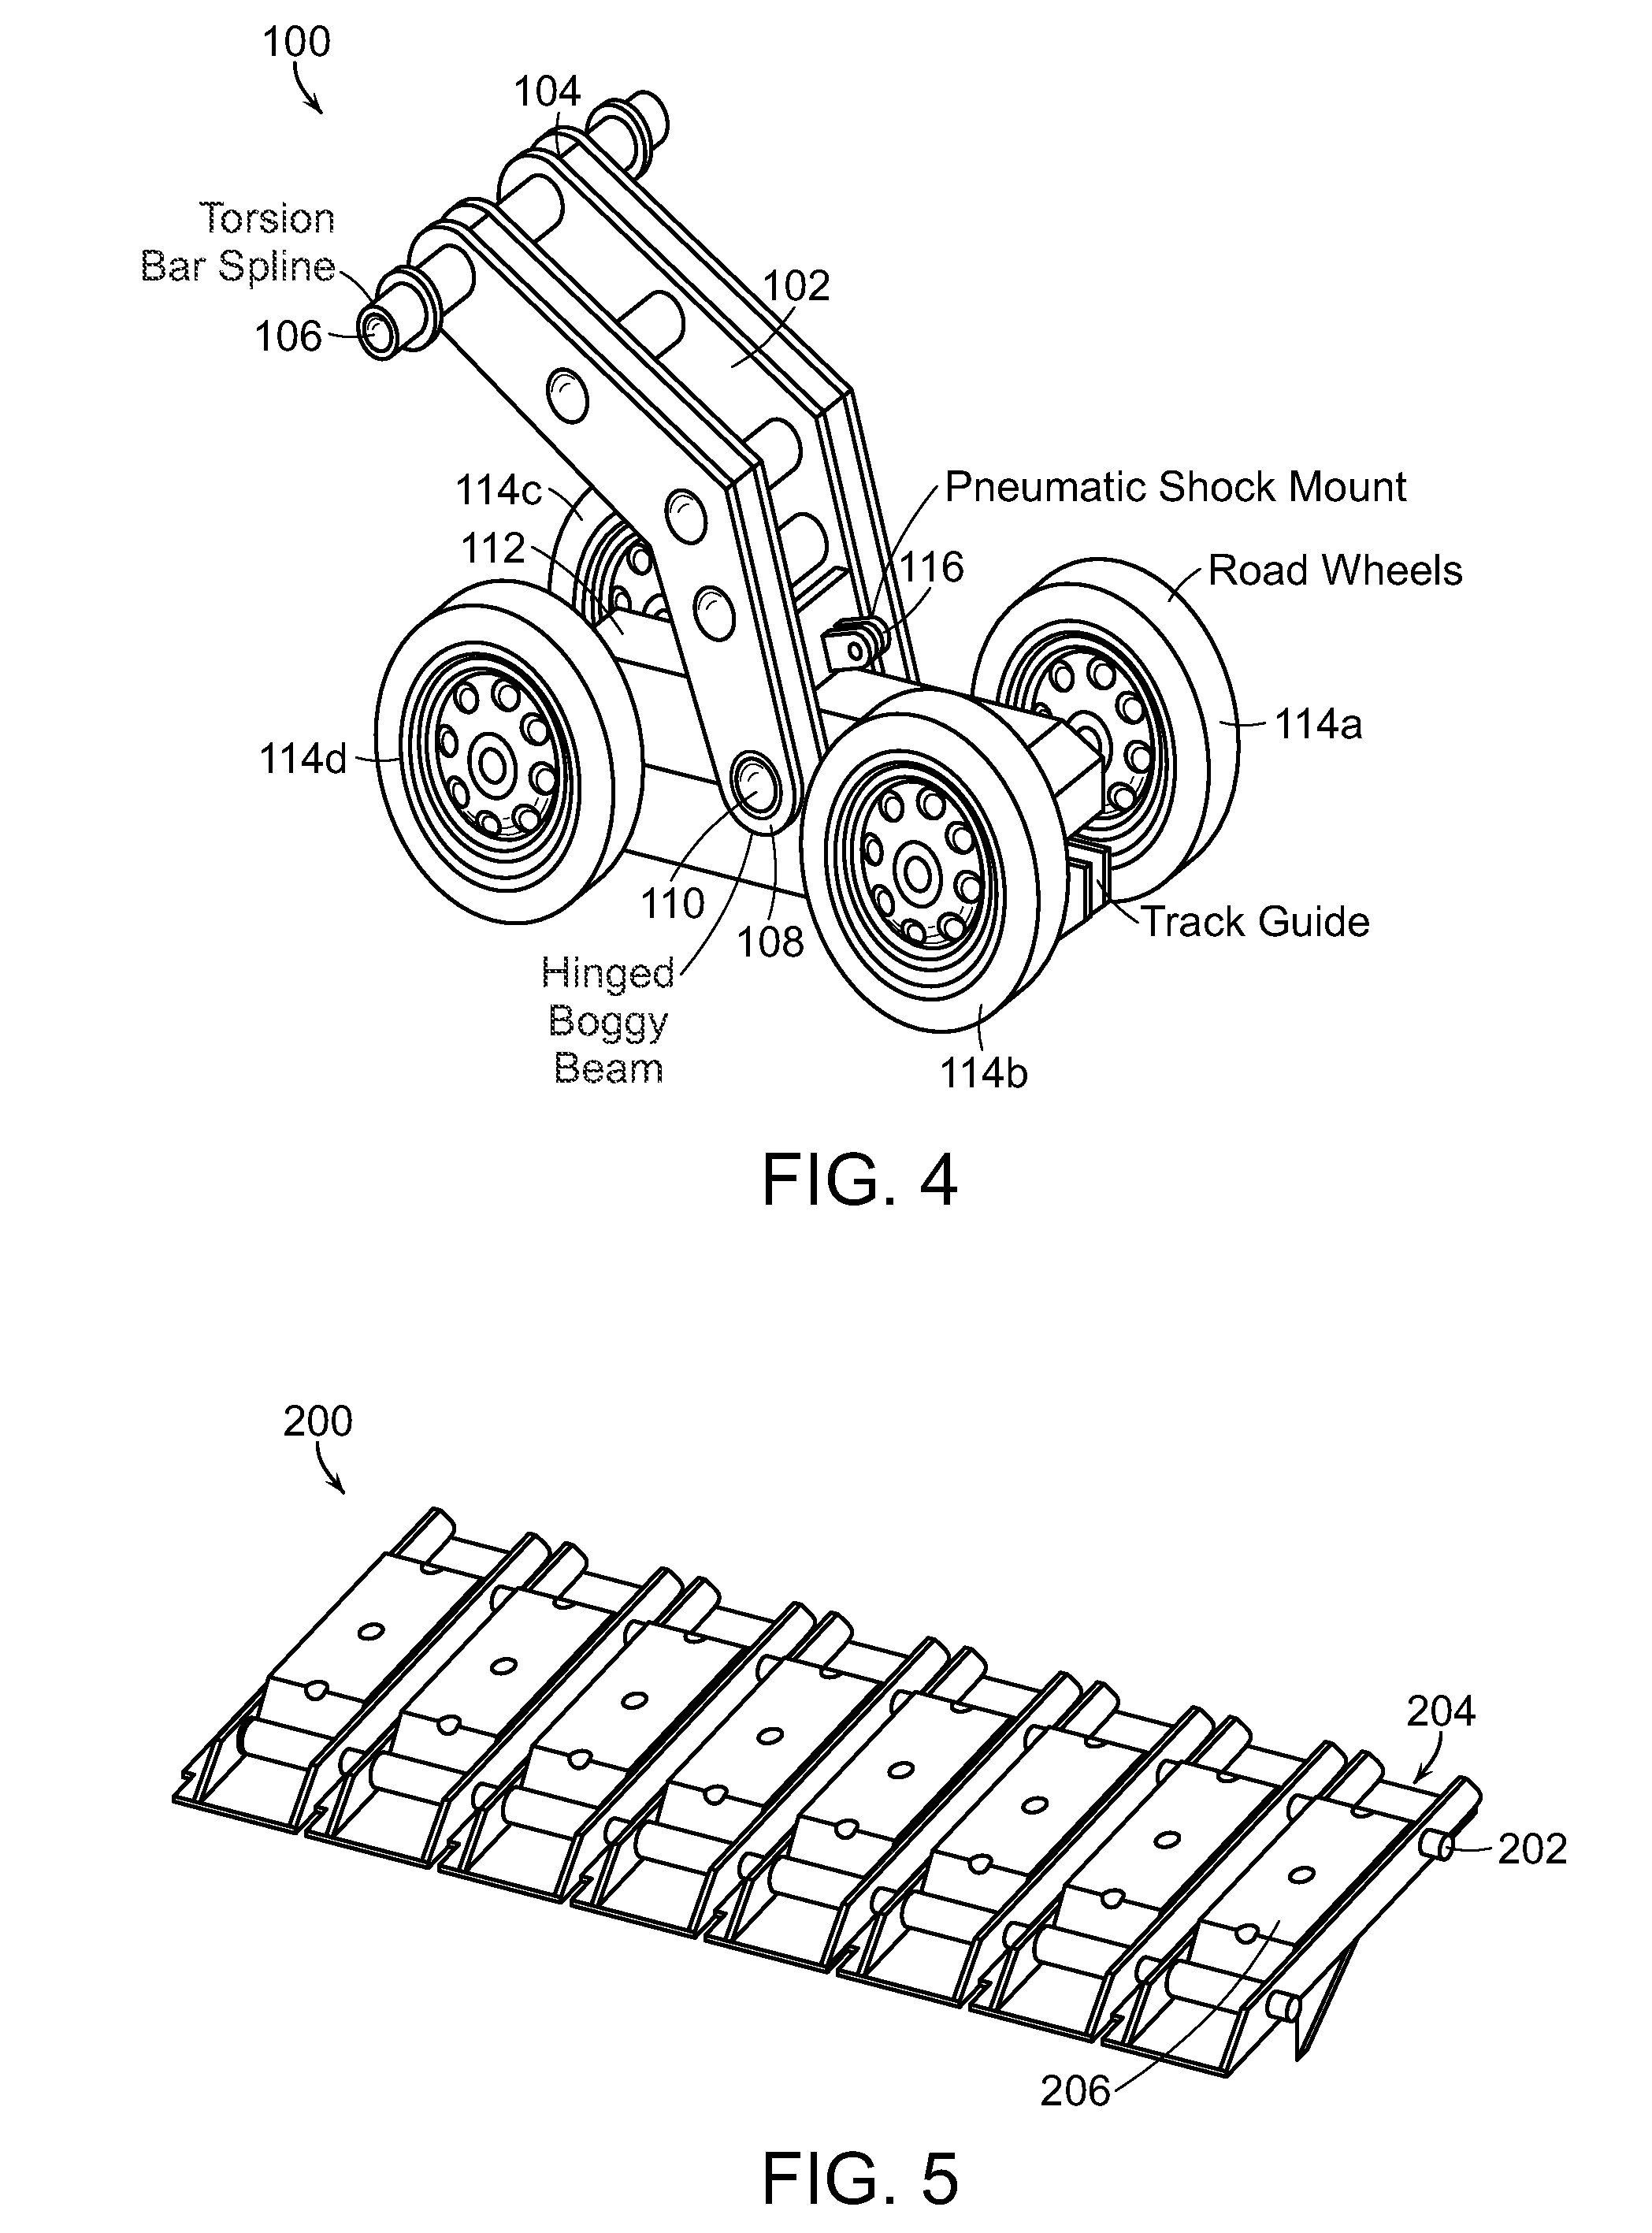 Diagram Of Car Gearbox Ripsaw Track Schematic Ripsaw References Pinterest Of Diagram Of Car Gearbox